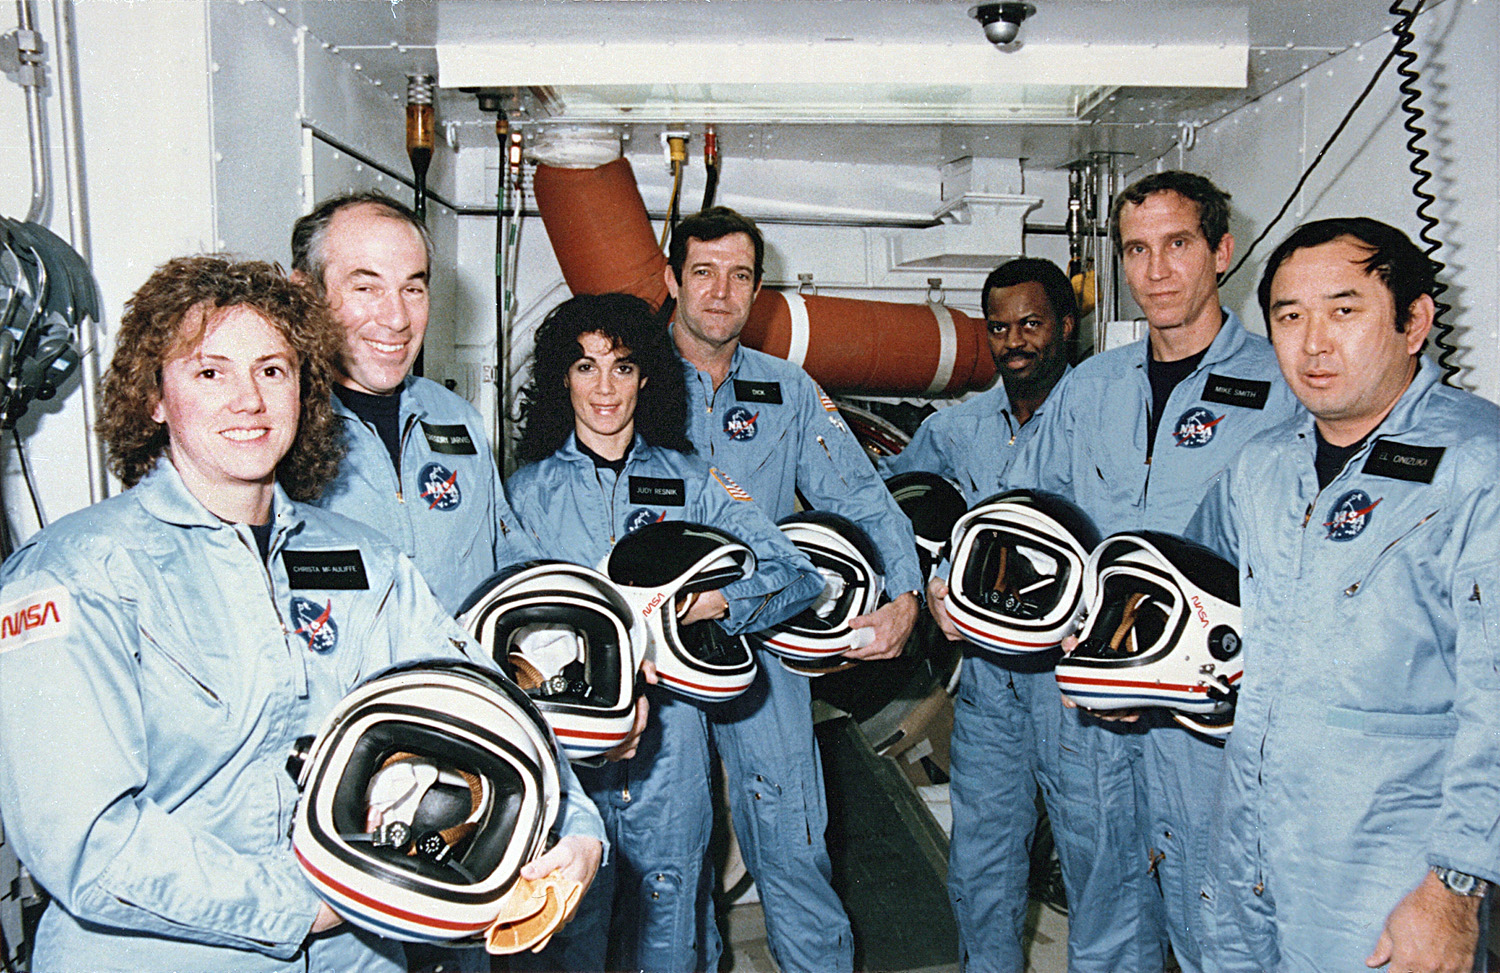 space shuttle challenger crew - photo #1